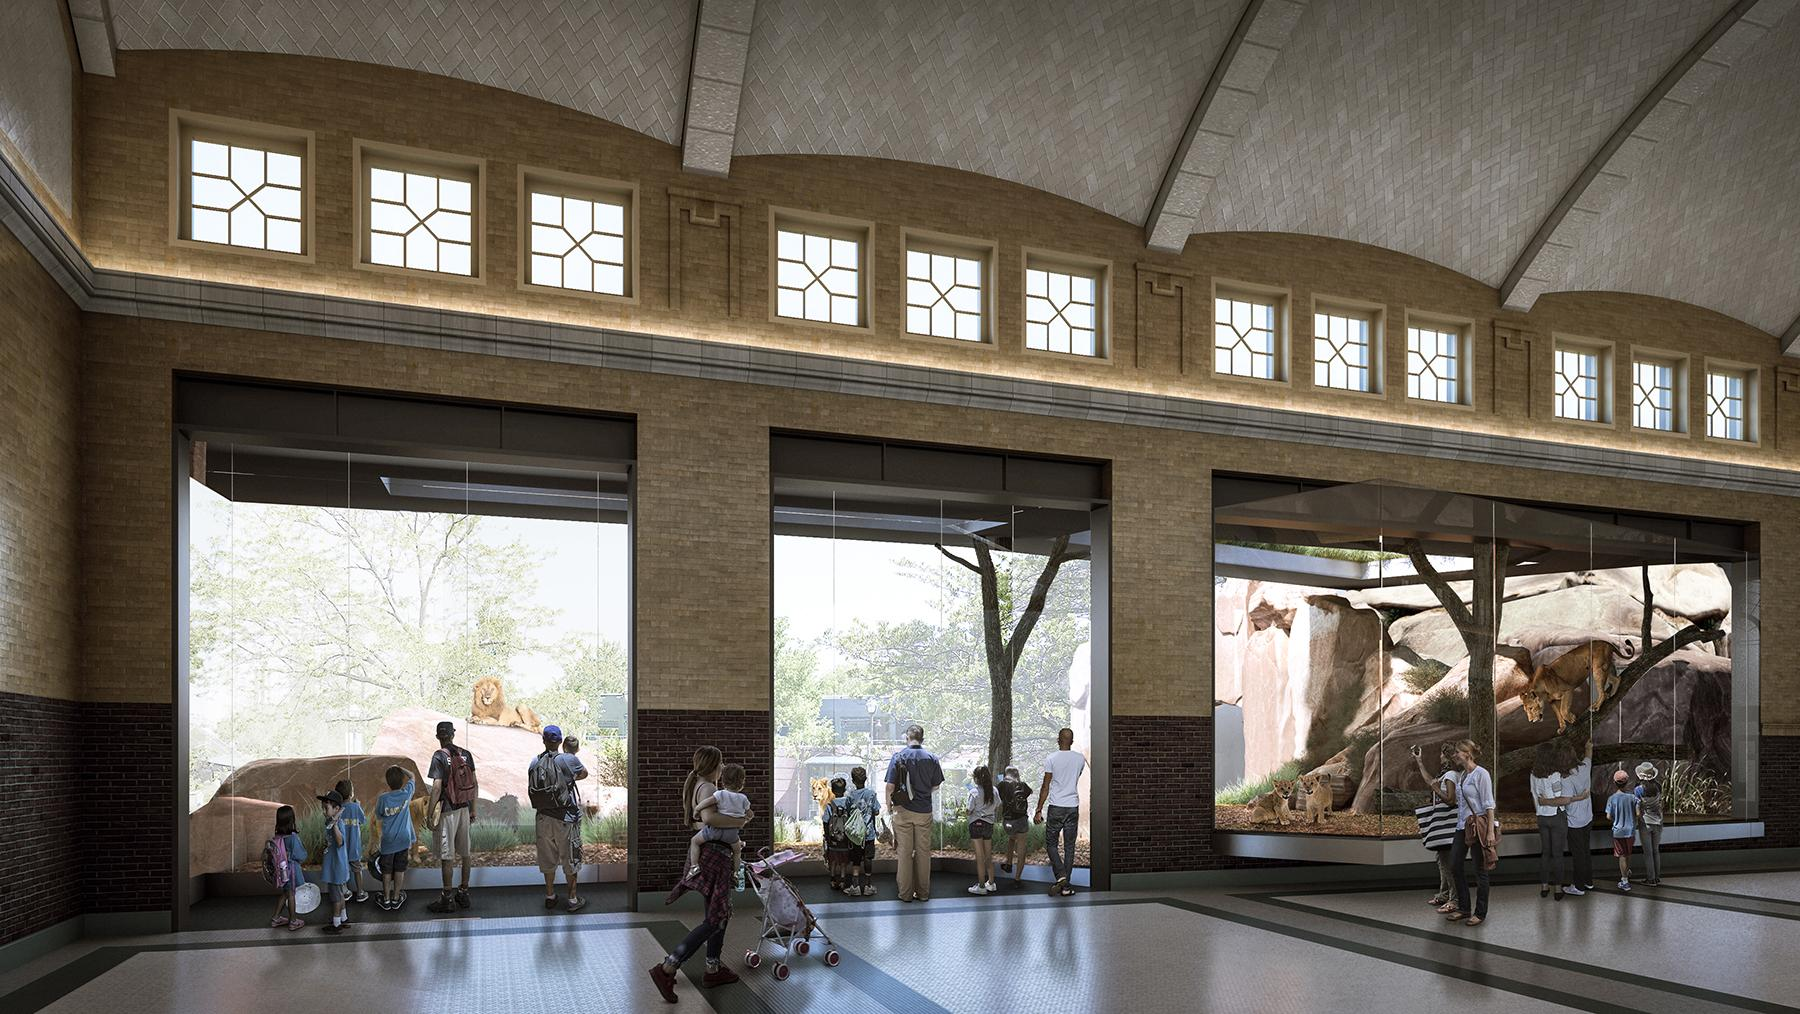 A rendering of the viewing area planned for Lincoln Park Zoo's Kovler Lion House (Courtesy Lincoln Park Zoo)